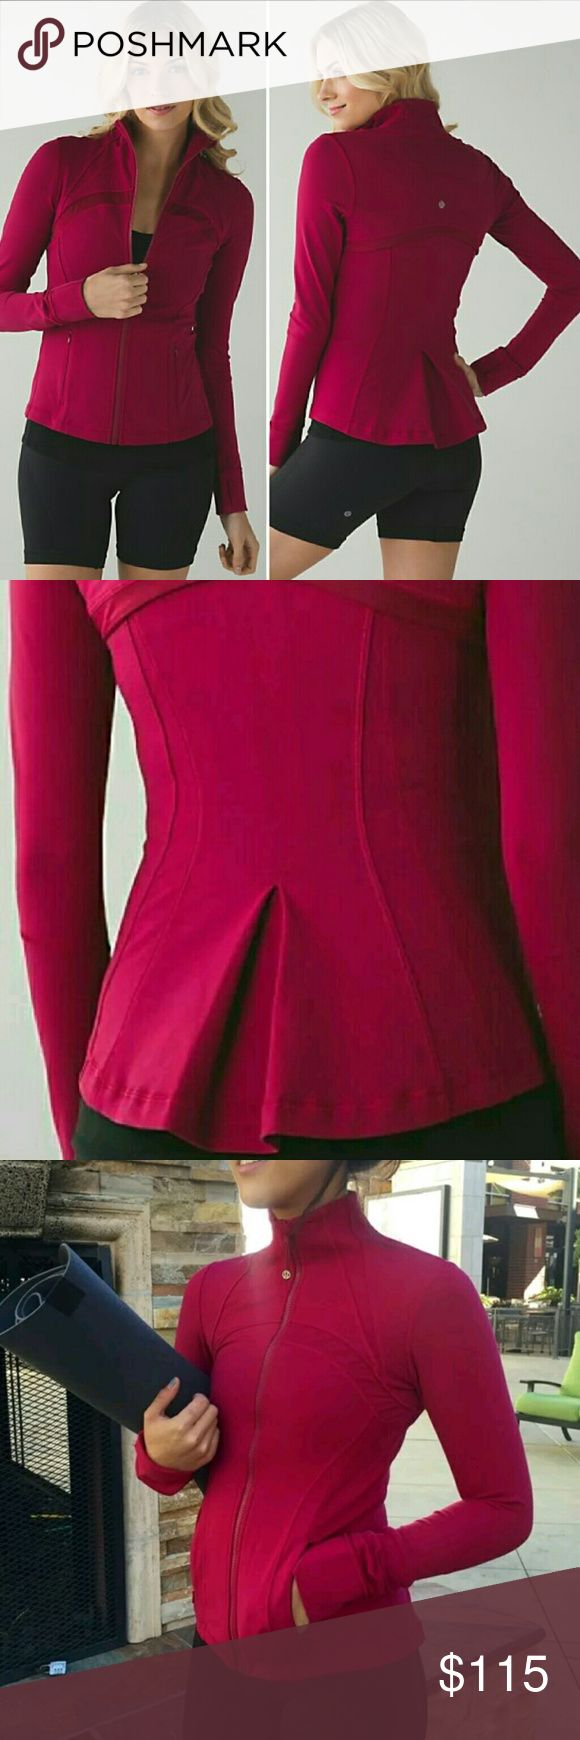 NEW*Rare Lululemon Berry Pleated Define Jacket 4 Special edition very vibrant&beautiful.Perfect condition brand new,just without cardboard tag super flattering. Pleated/Tiered back gives it a slight peplum look.   Color is a called berry rumble,a deep pinkish red. It looks very true red&some lighting and more pink tinted in others but the pictures do a pretty good job of capturing the color it typically appears  Keywords:forme,hustle in your bustle,full zip up sweatshirt sweater track Yoga…